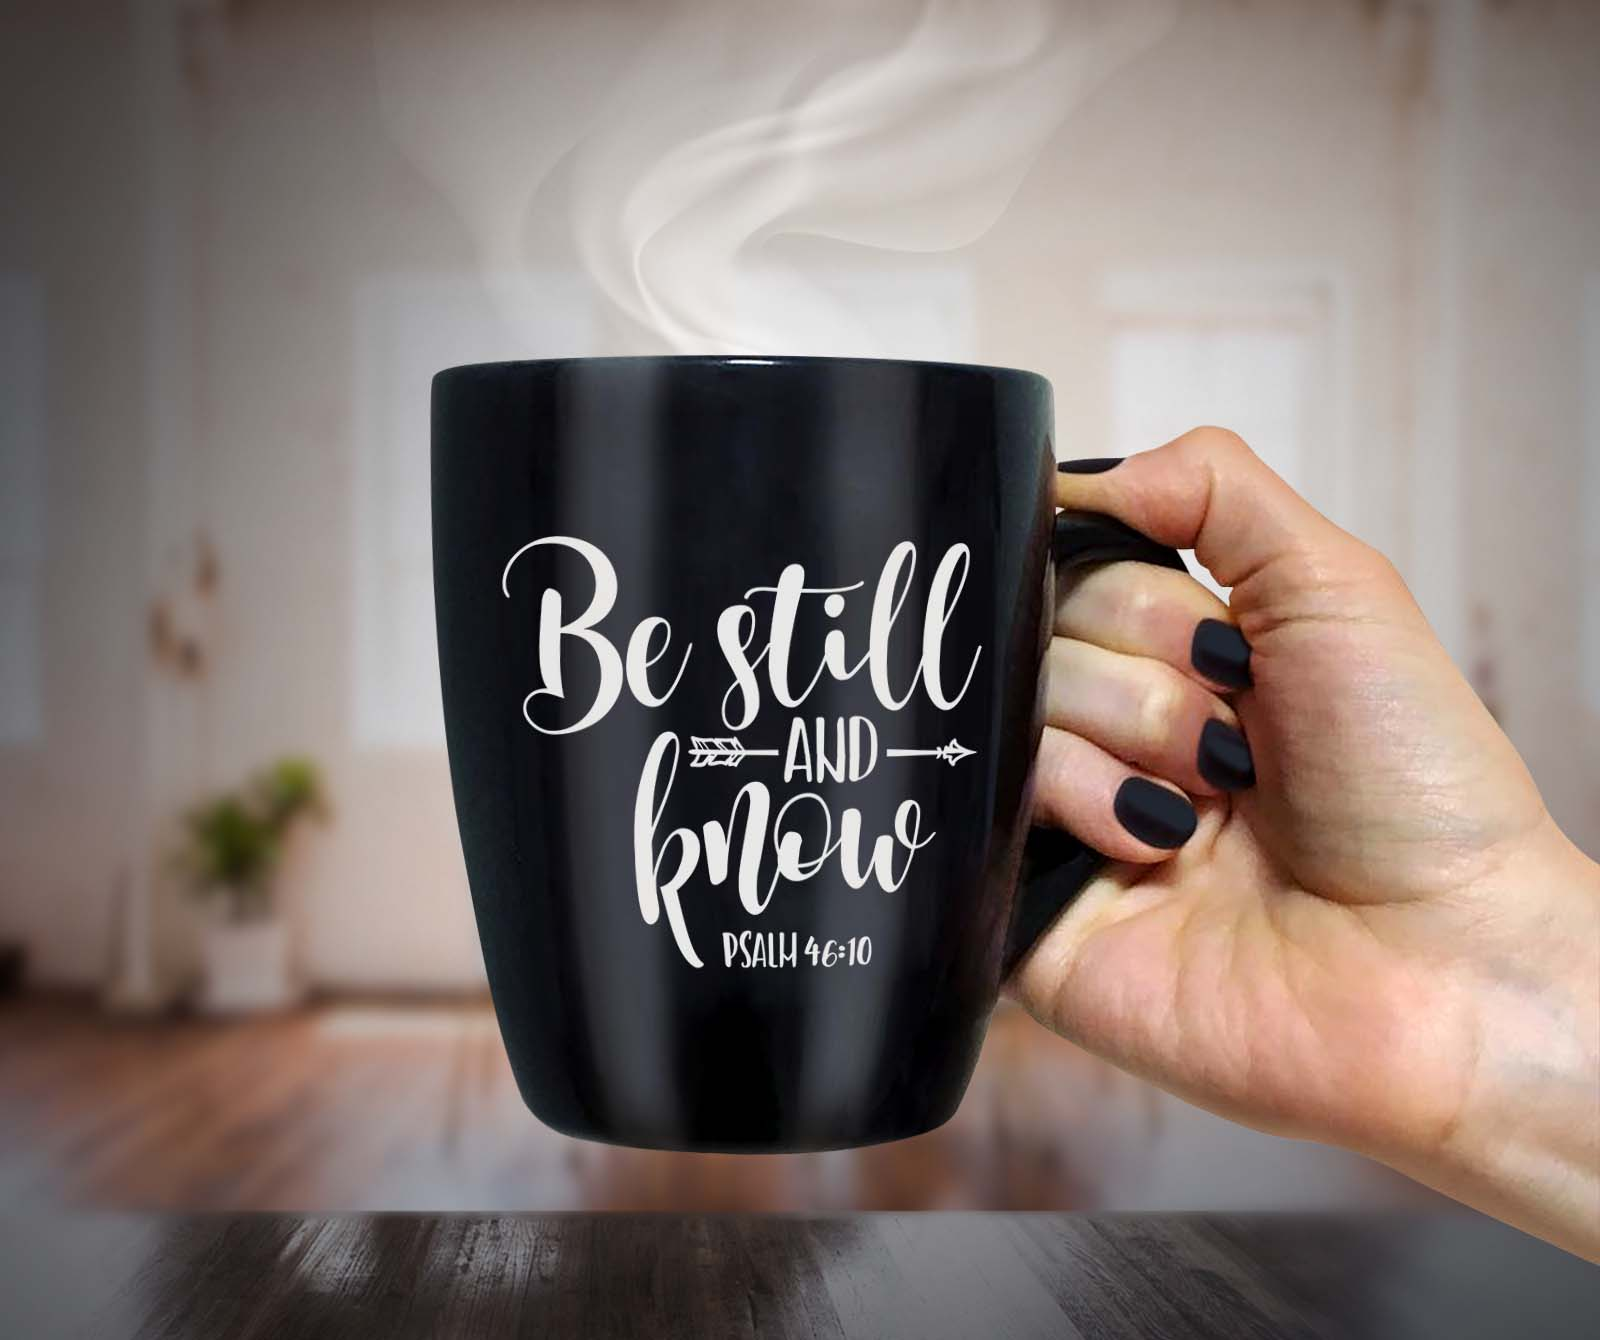 Be still and know Arrow SVG DXF PNG EPS Psalm 46 10 example image 2